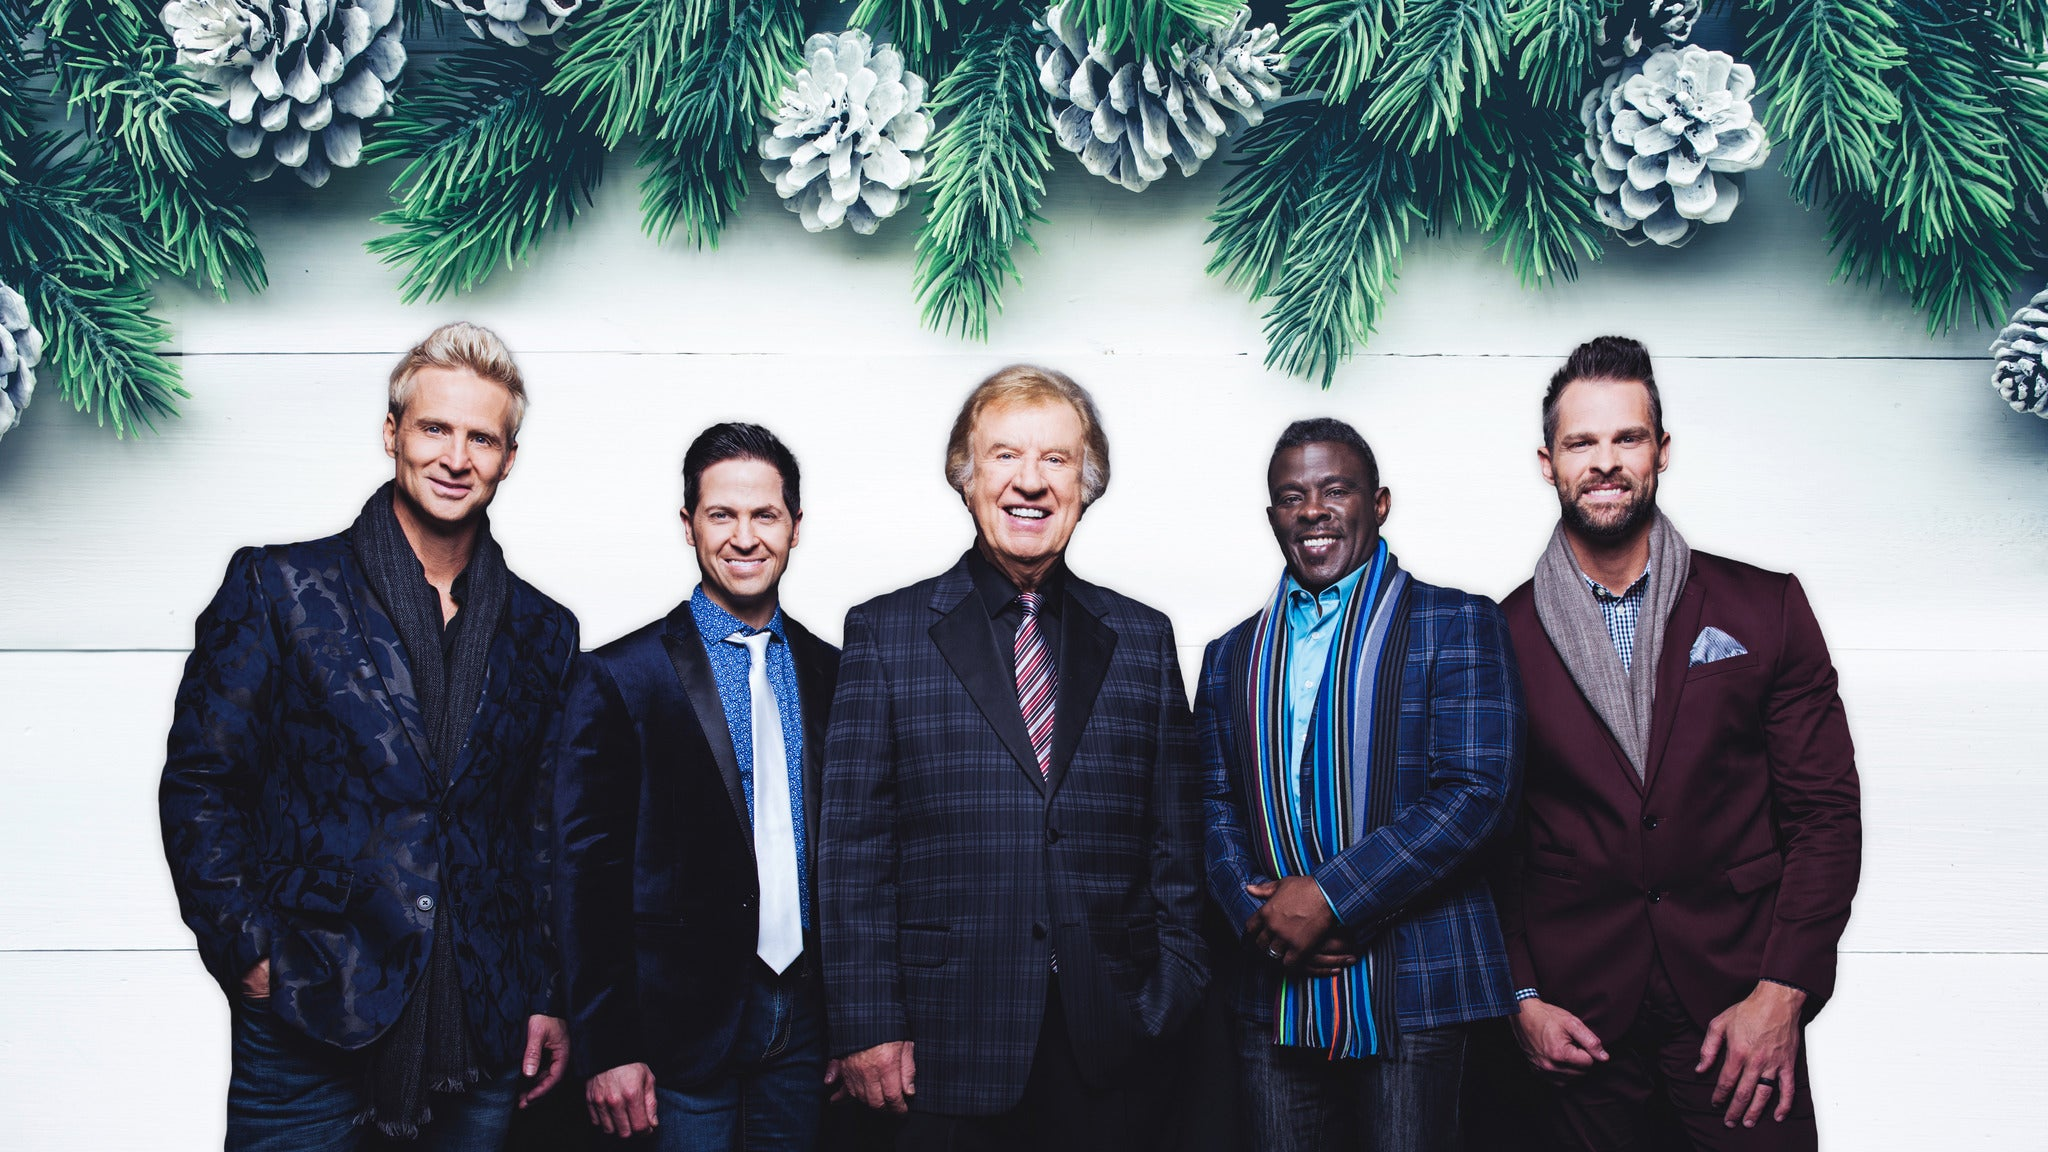 Bill Gaither Presents the Gaither Christmas Homecoming